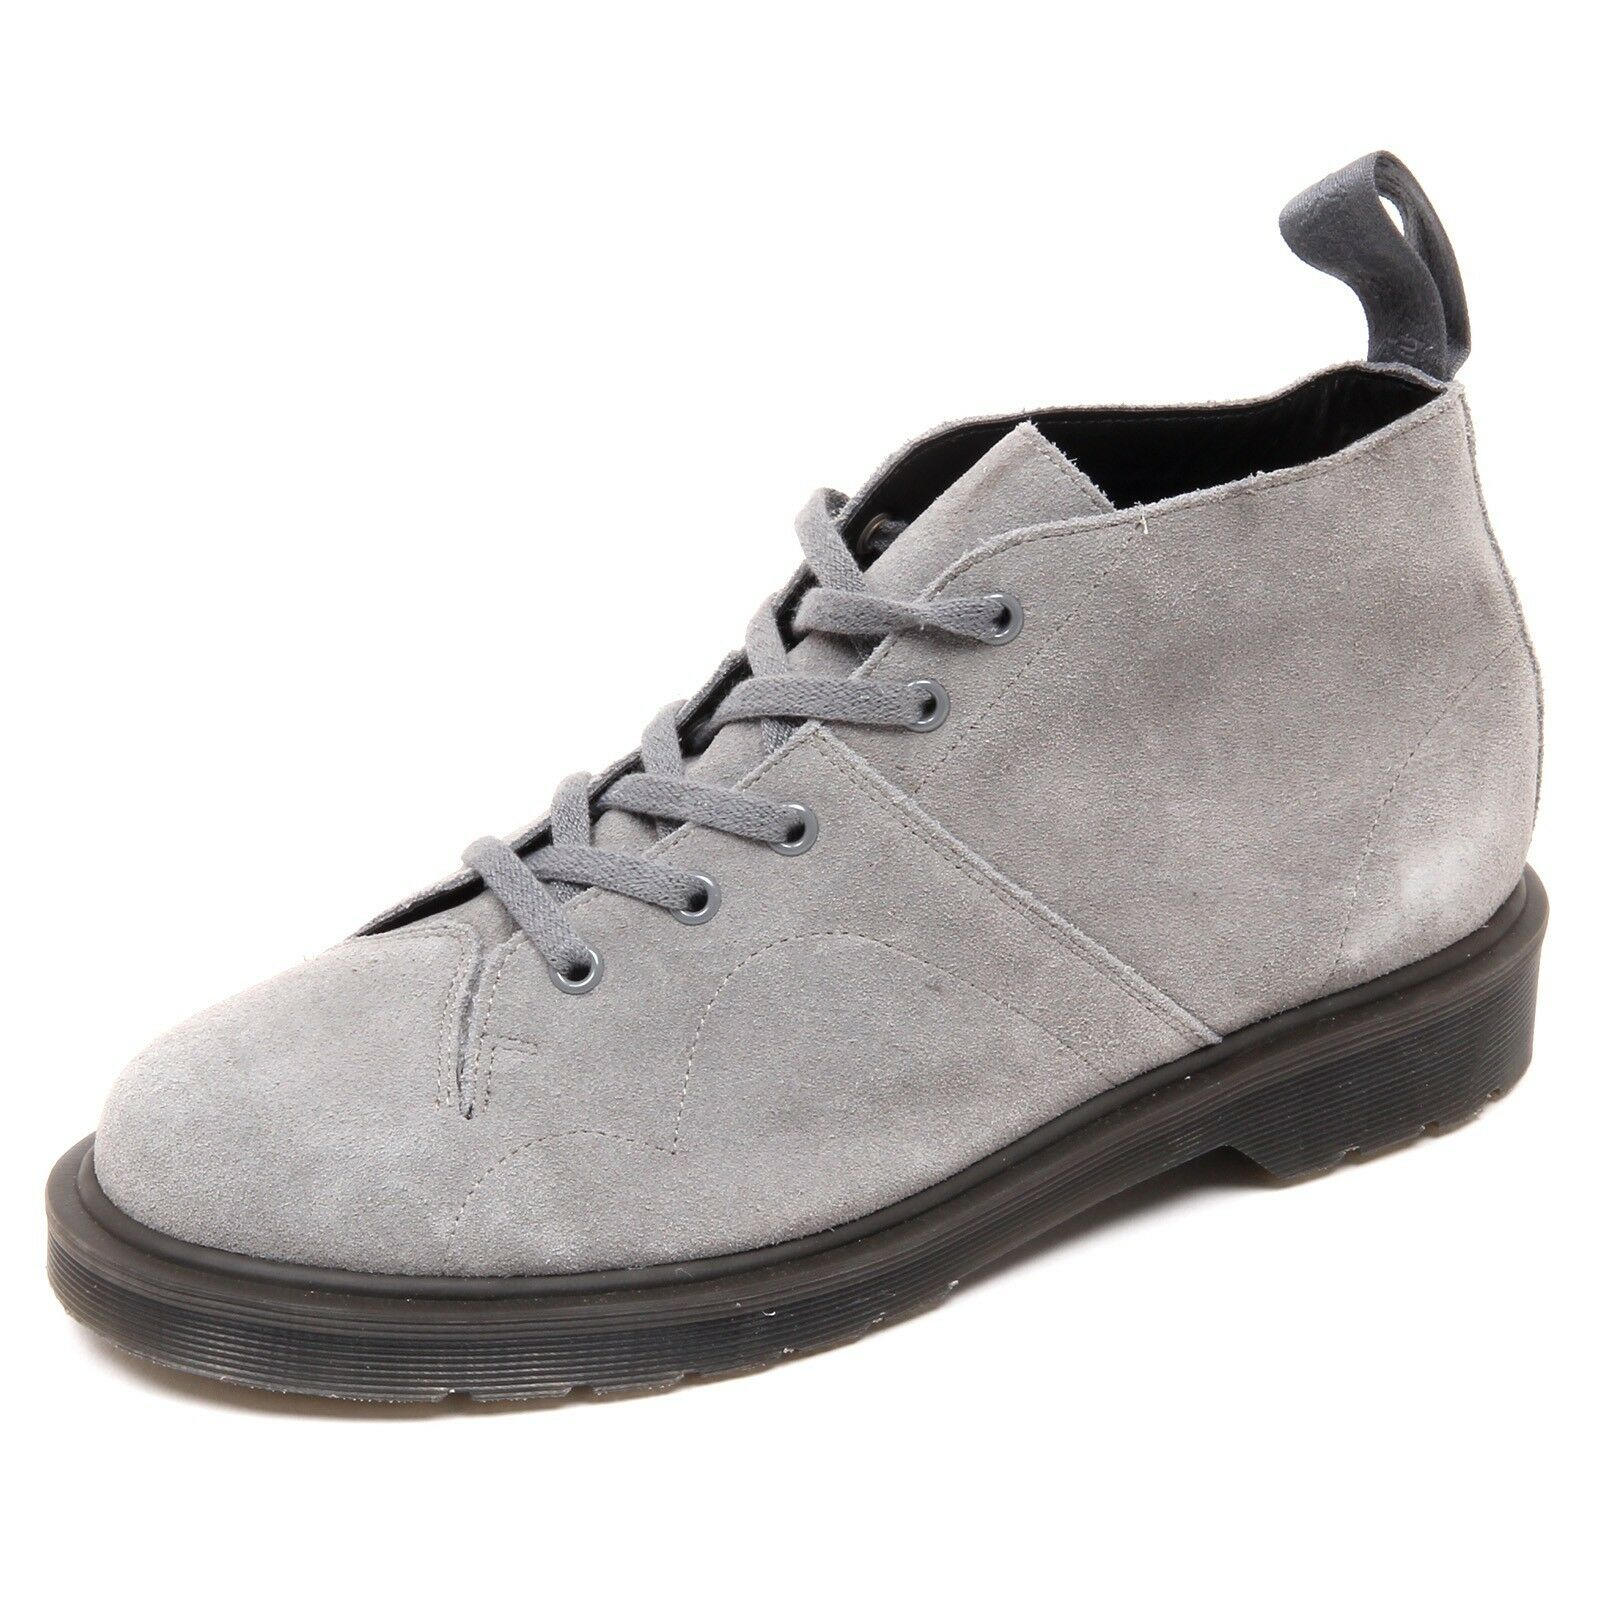 D3720 (without box) sneaker uomo DR. grigio MARTENS CHURCH grigio DR. shoe man 378a9d